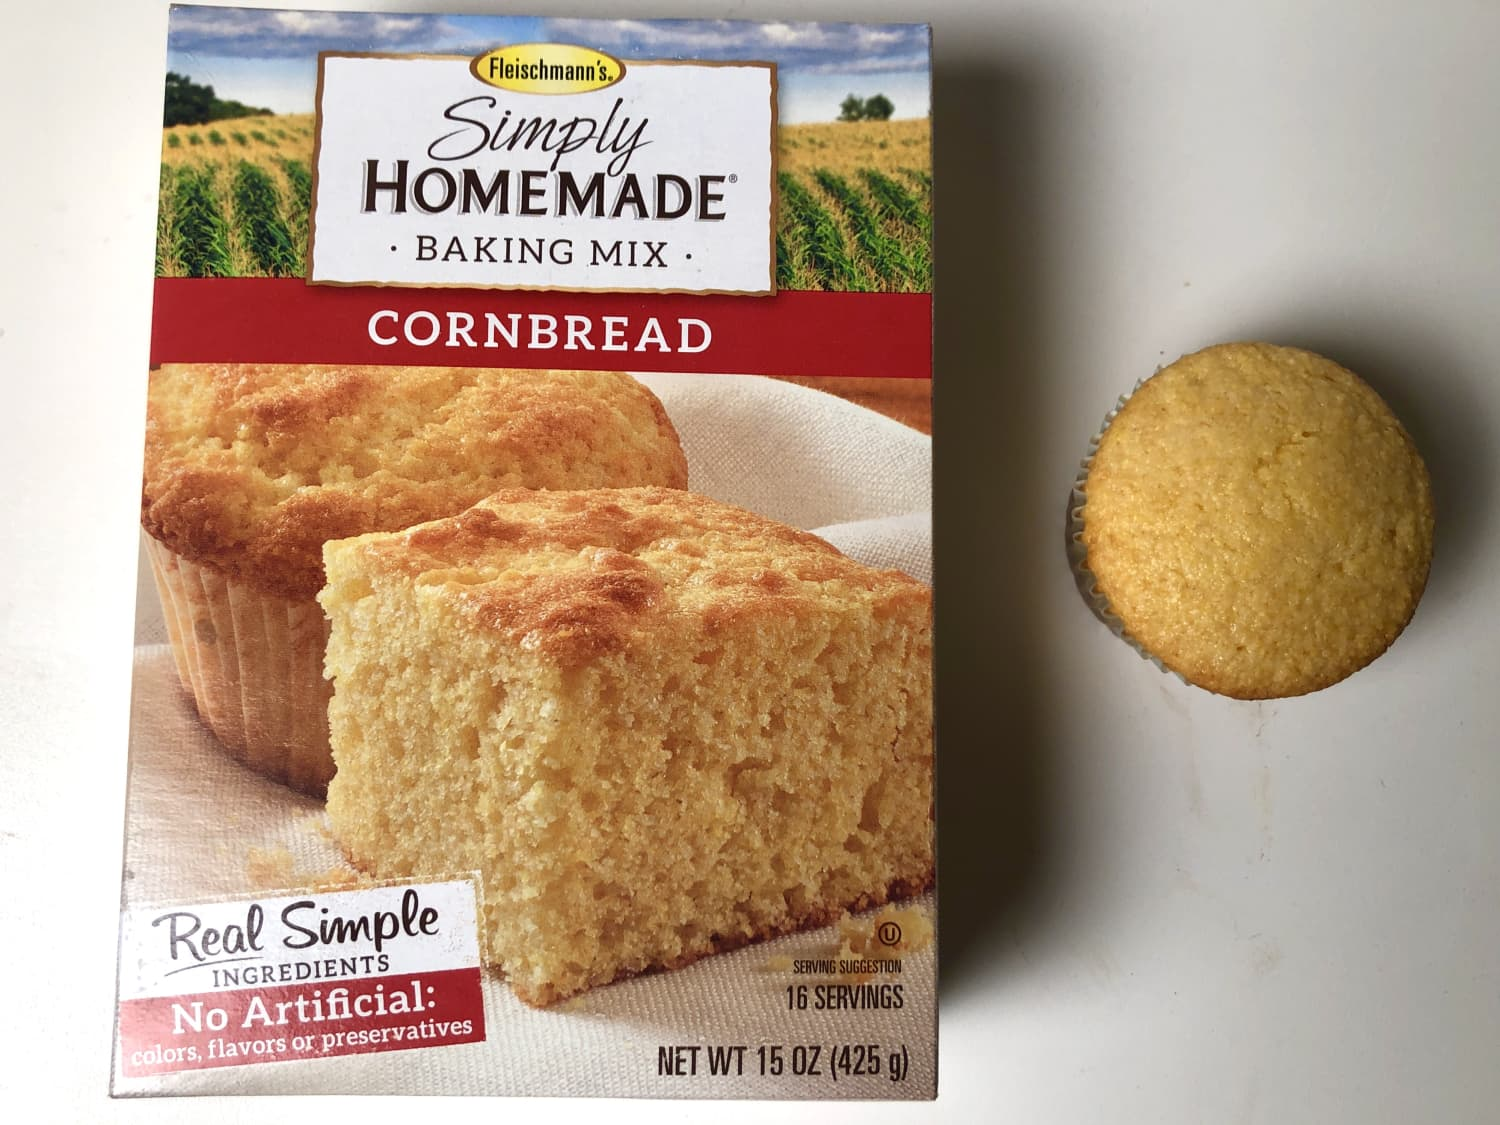 I Tried 9 Boxed Cornbread Mixes and Now This Is the Only One I'll Buy